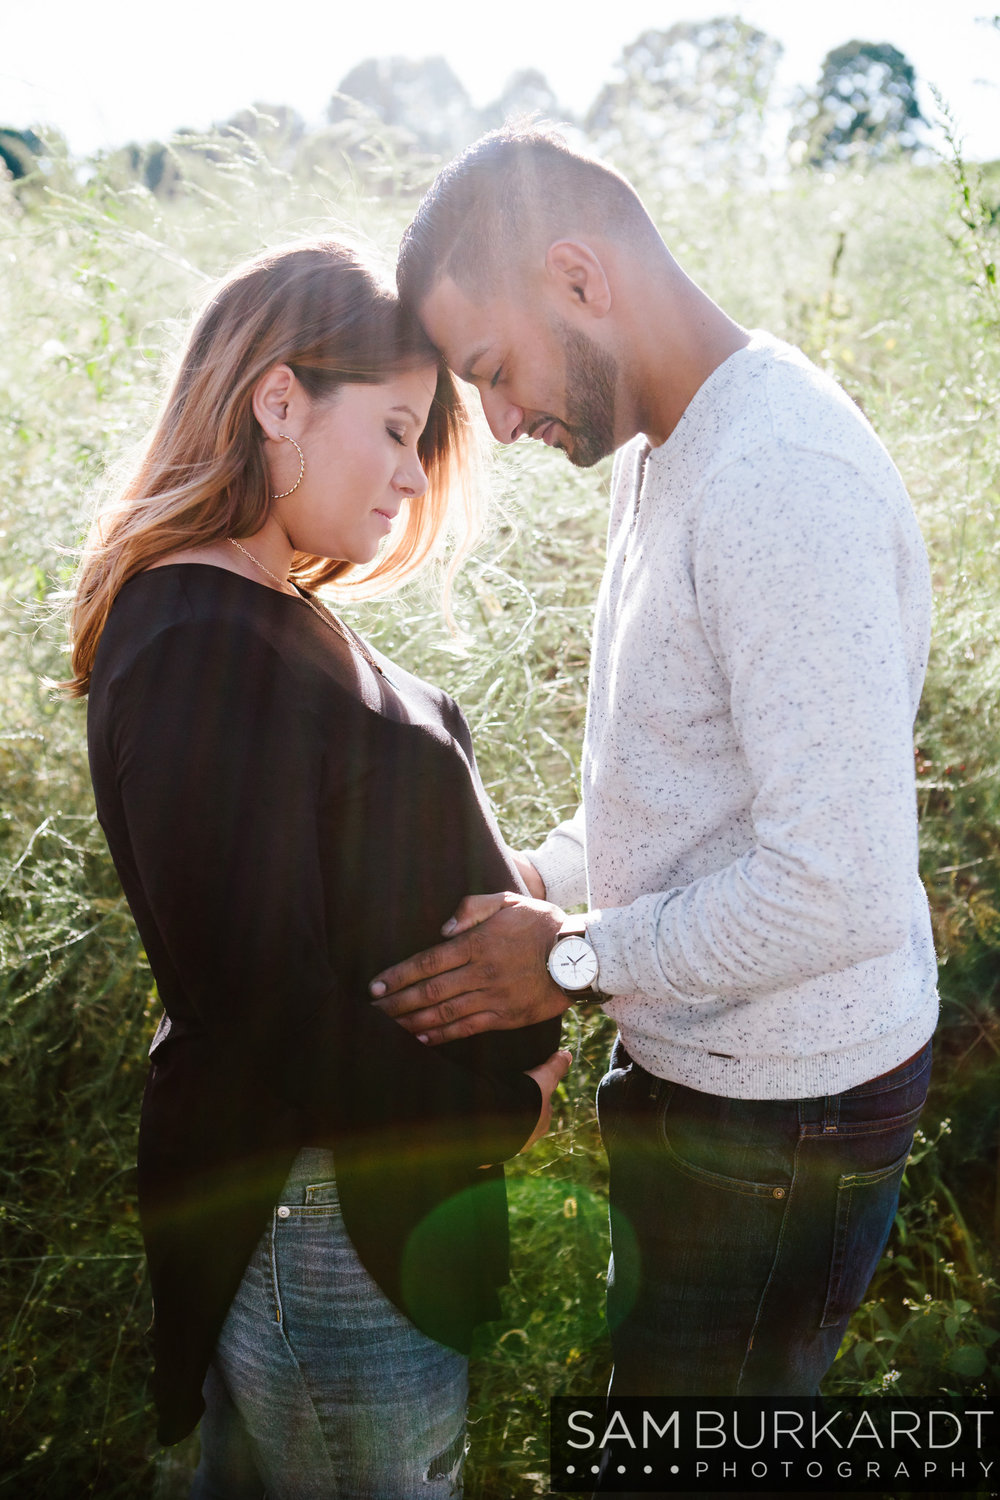 sburkardt_maternity_connecticut_fall_orchard_photography_012.jpg